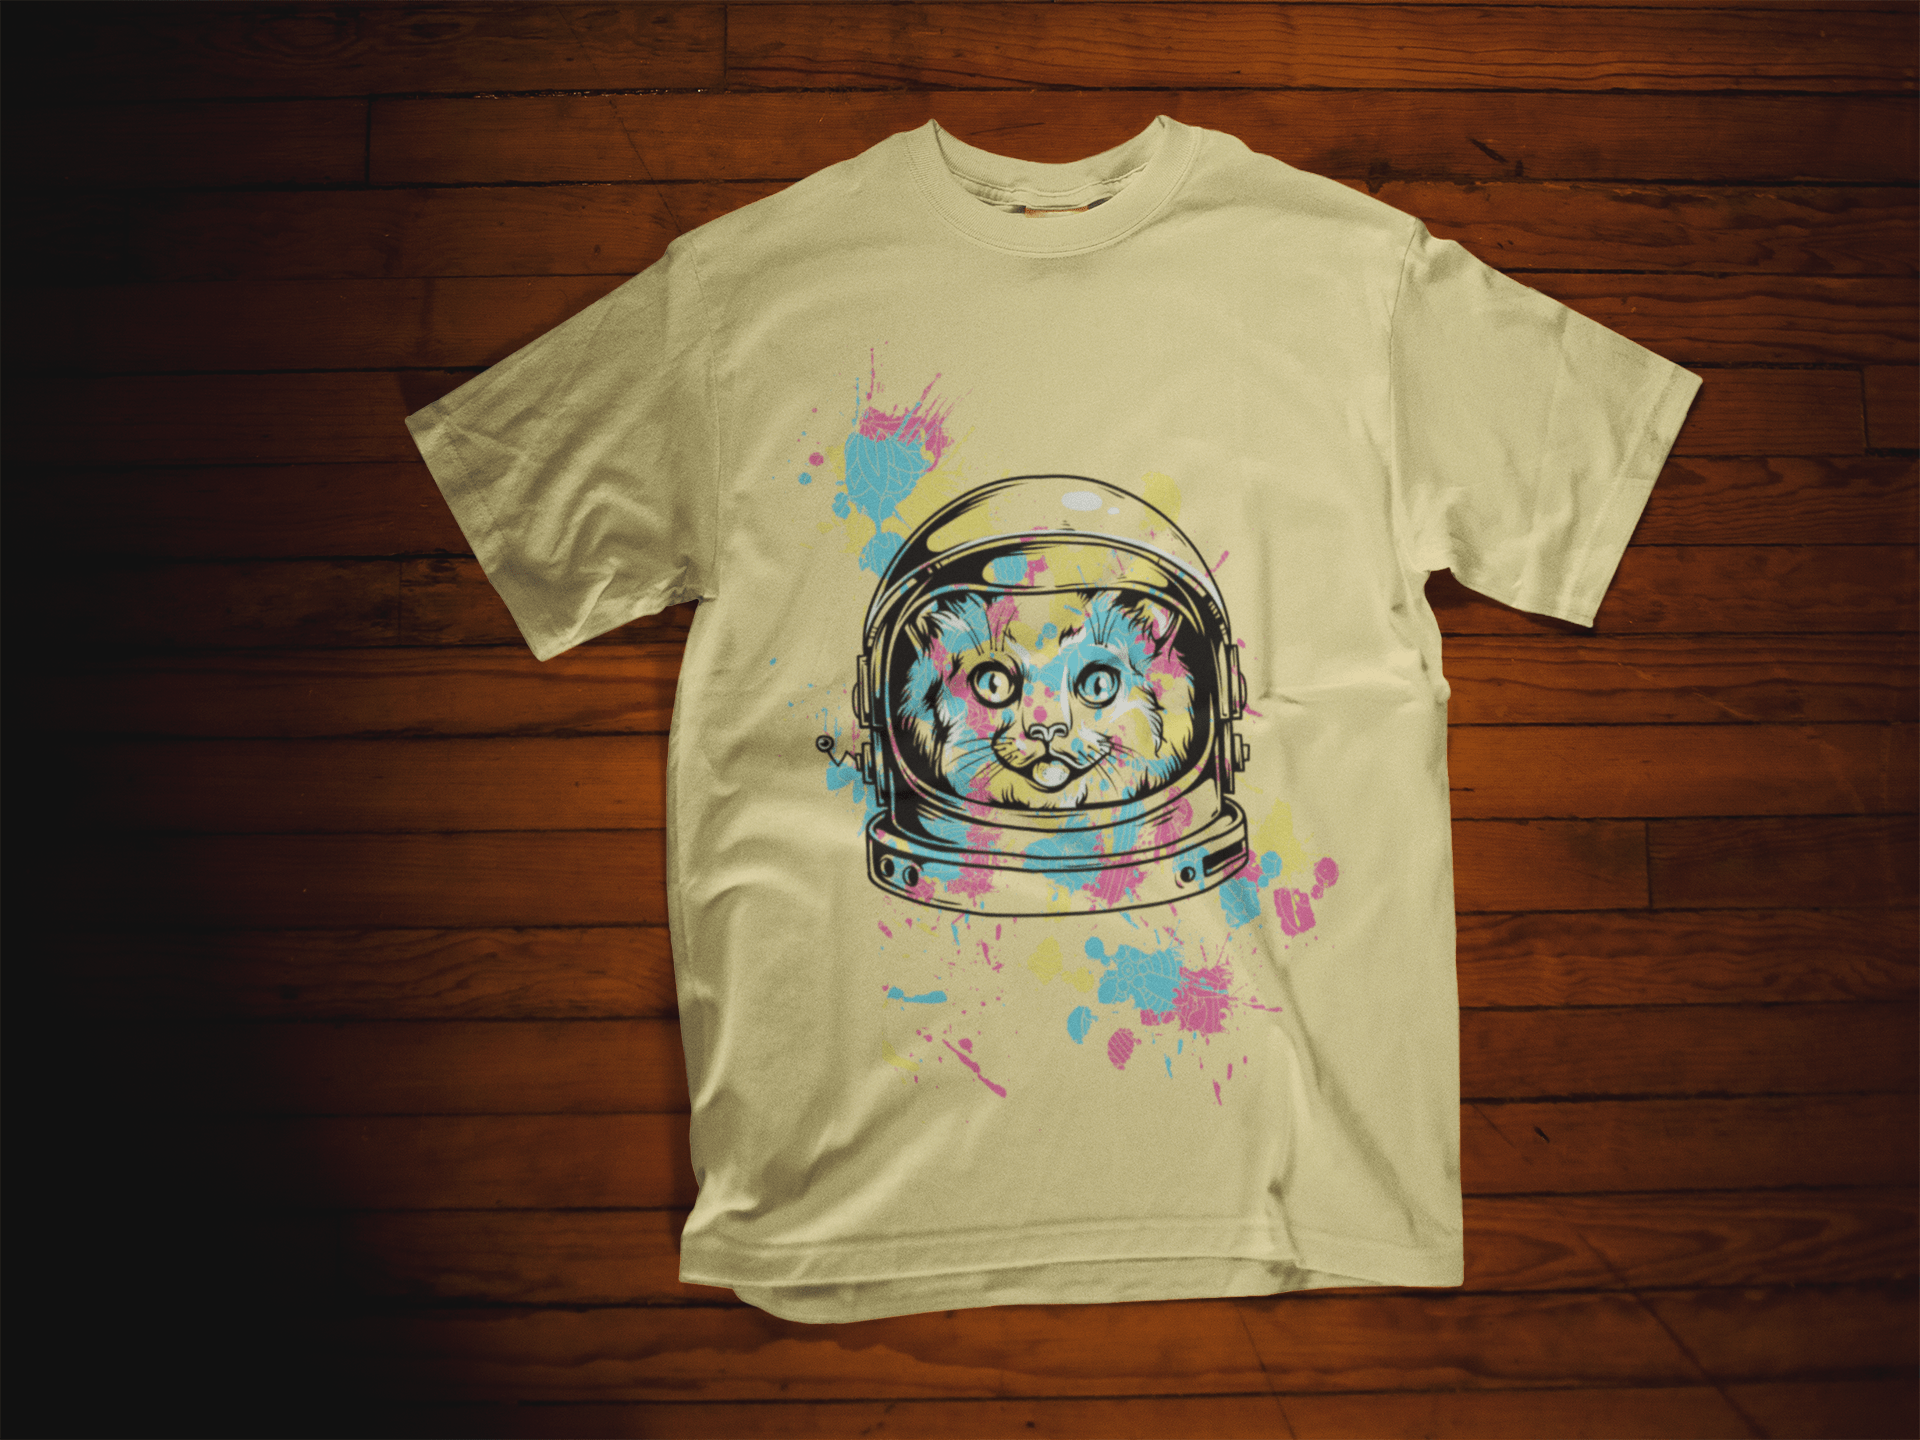 2018 Latest Trends in T-shirt Designs placeit 7